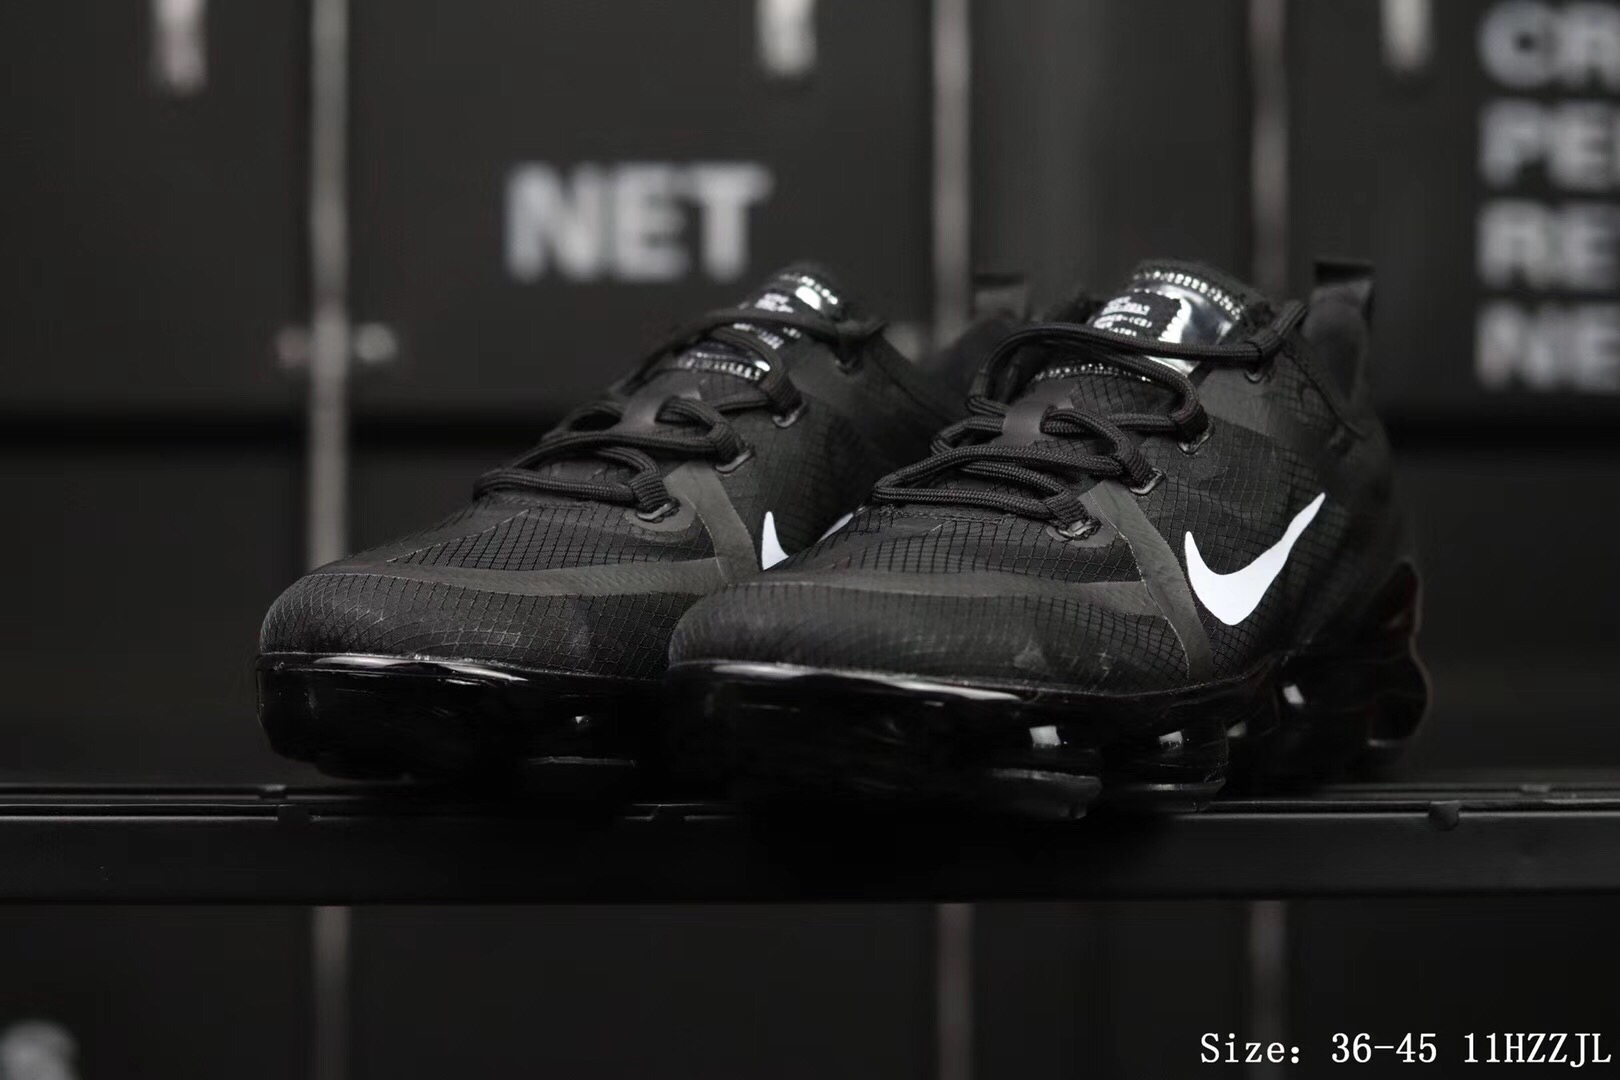 Nike Air Vapormax 2019 Mesh Black Shoes For Women